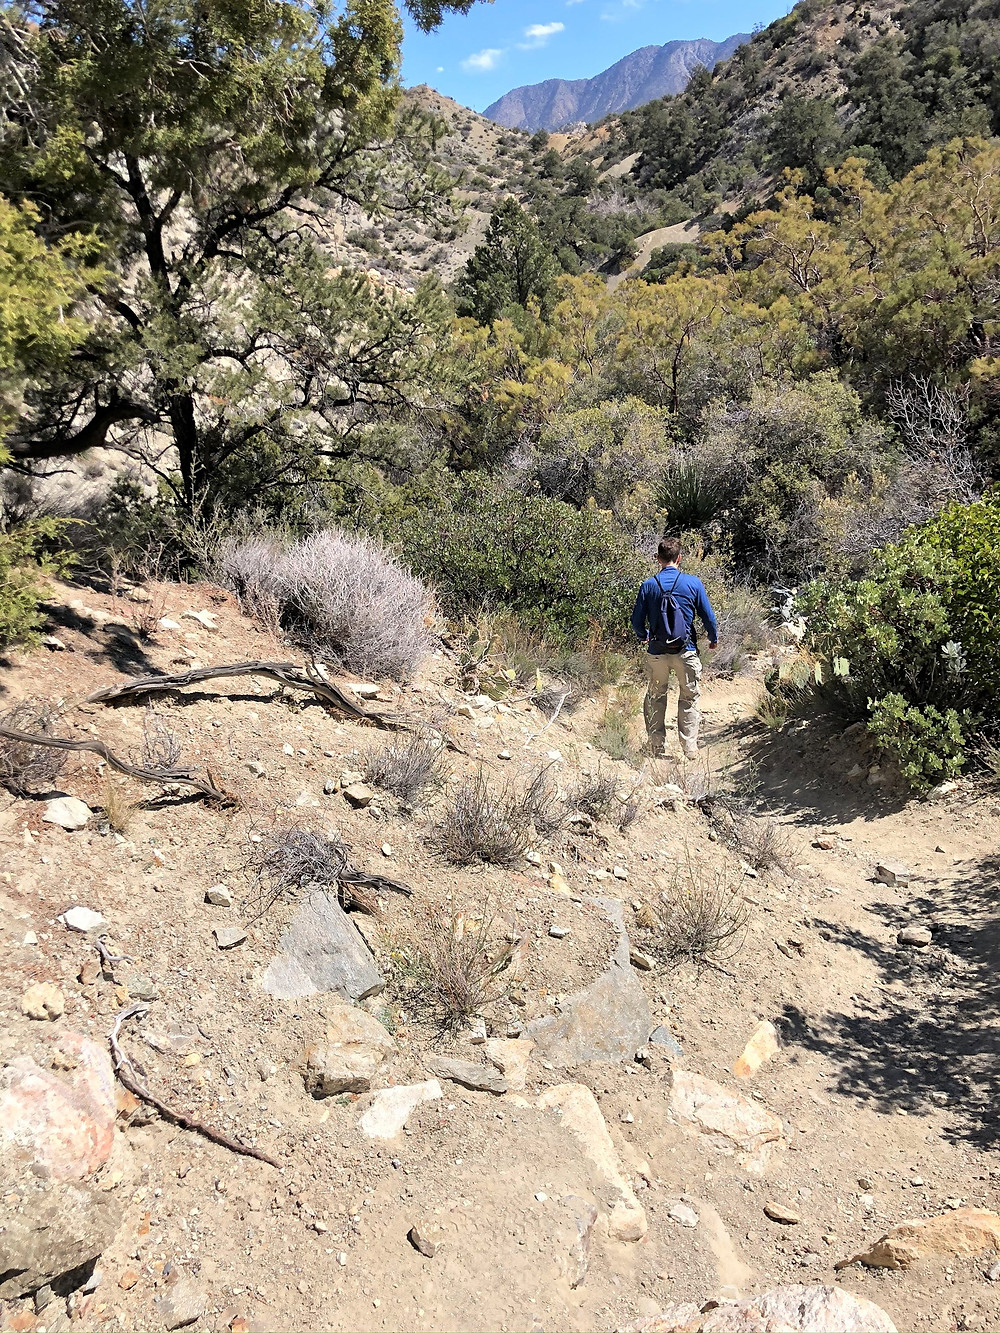 Hiking the Cactus Spring trail in the Santa Rosa Mountain Wilderness